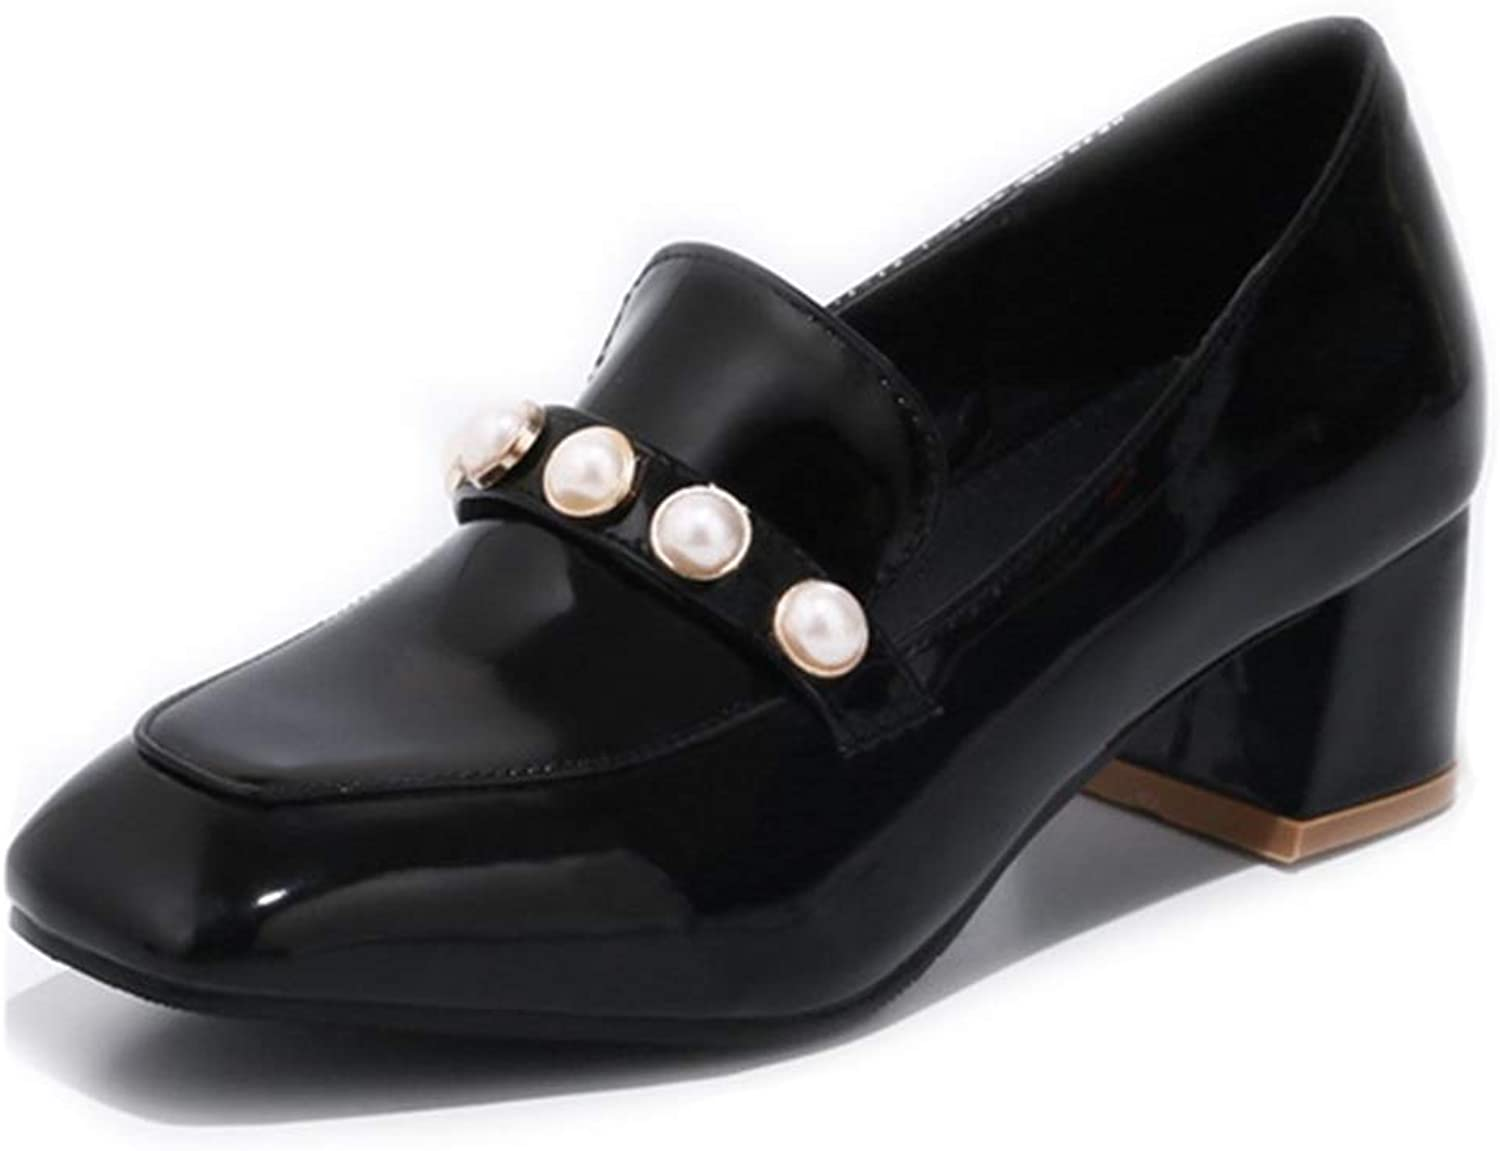 GIY Women's Classic Oxfords Loafers shoes Square Toe Slip-On Studded Retro Mid Block Heel Dress Pumps